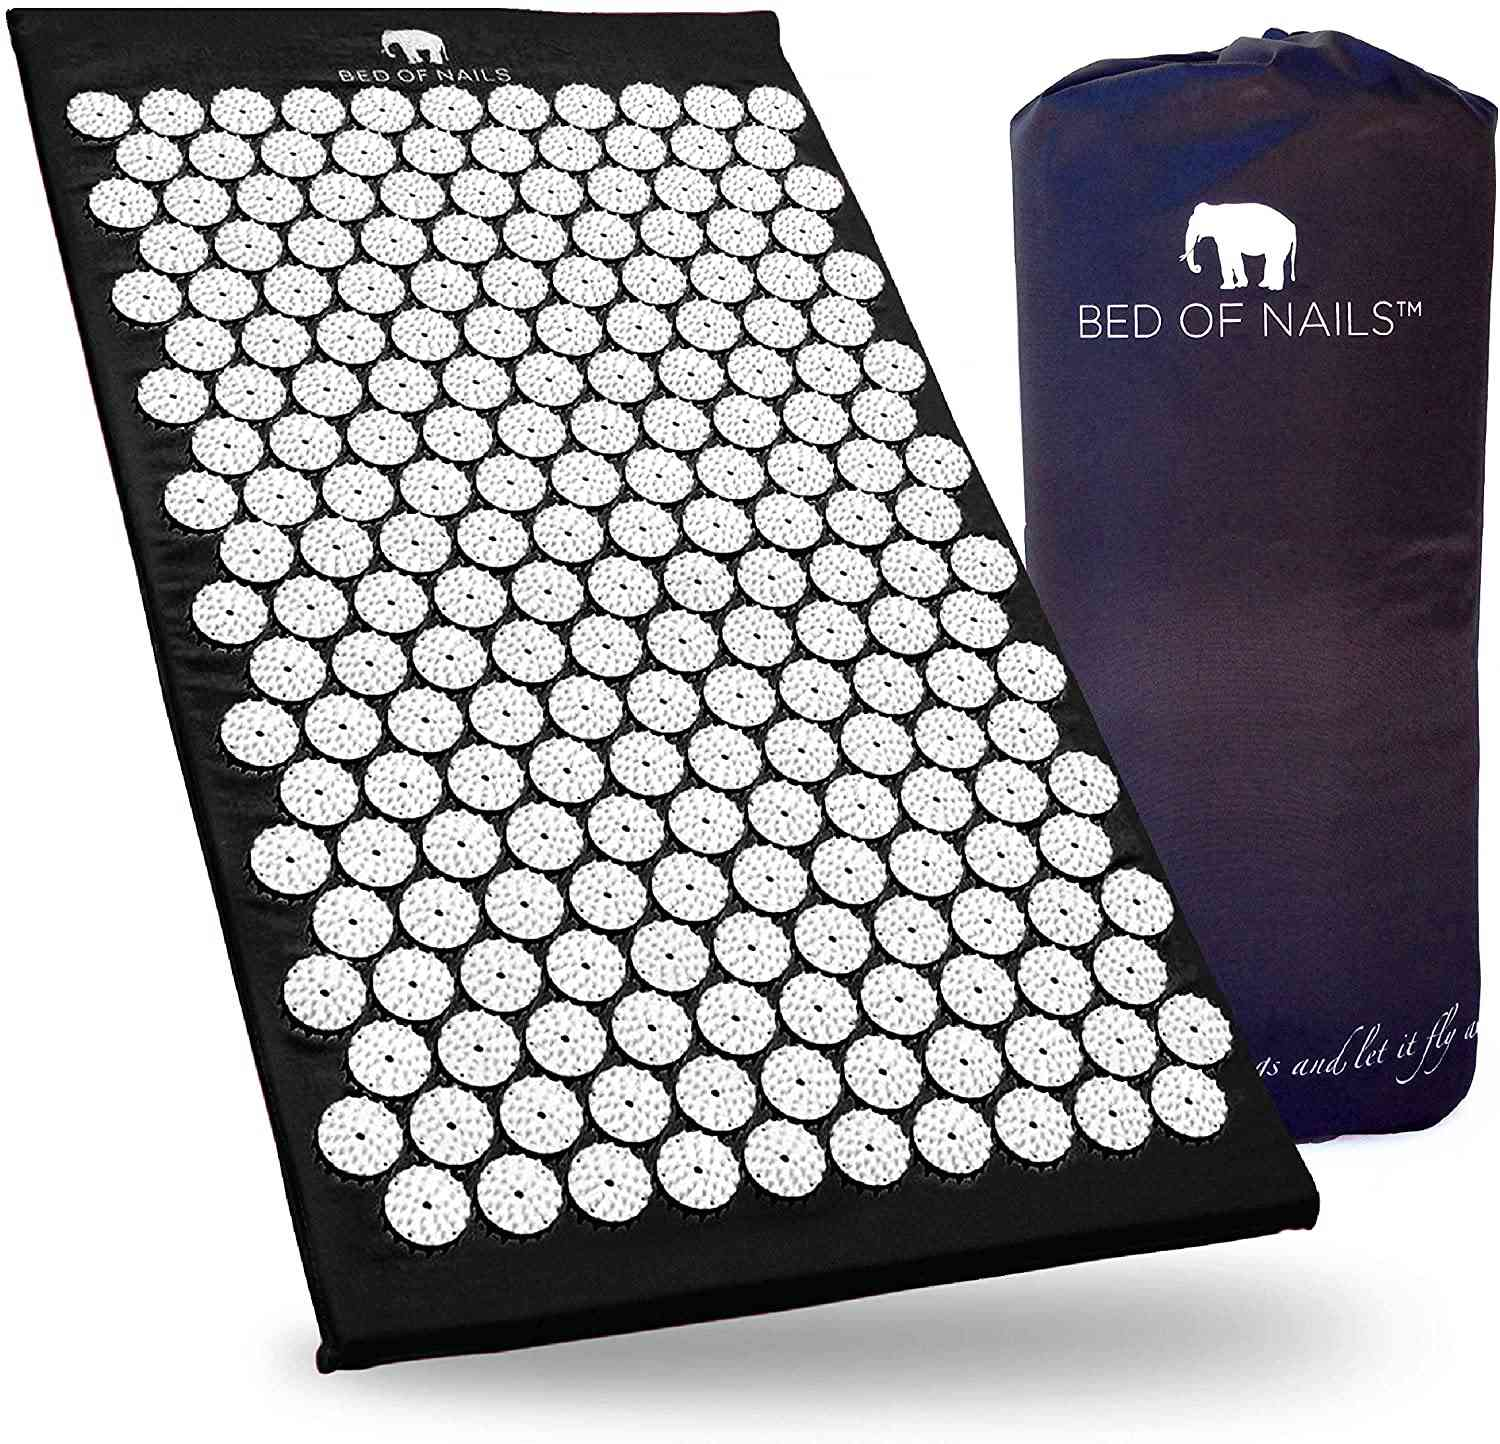 Bed of Nails Original Acupressure Mat for Back/Body Pain Treatment